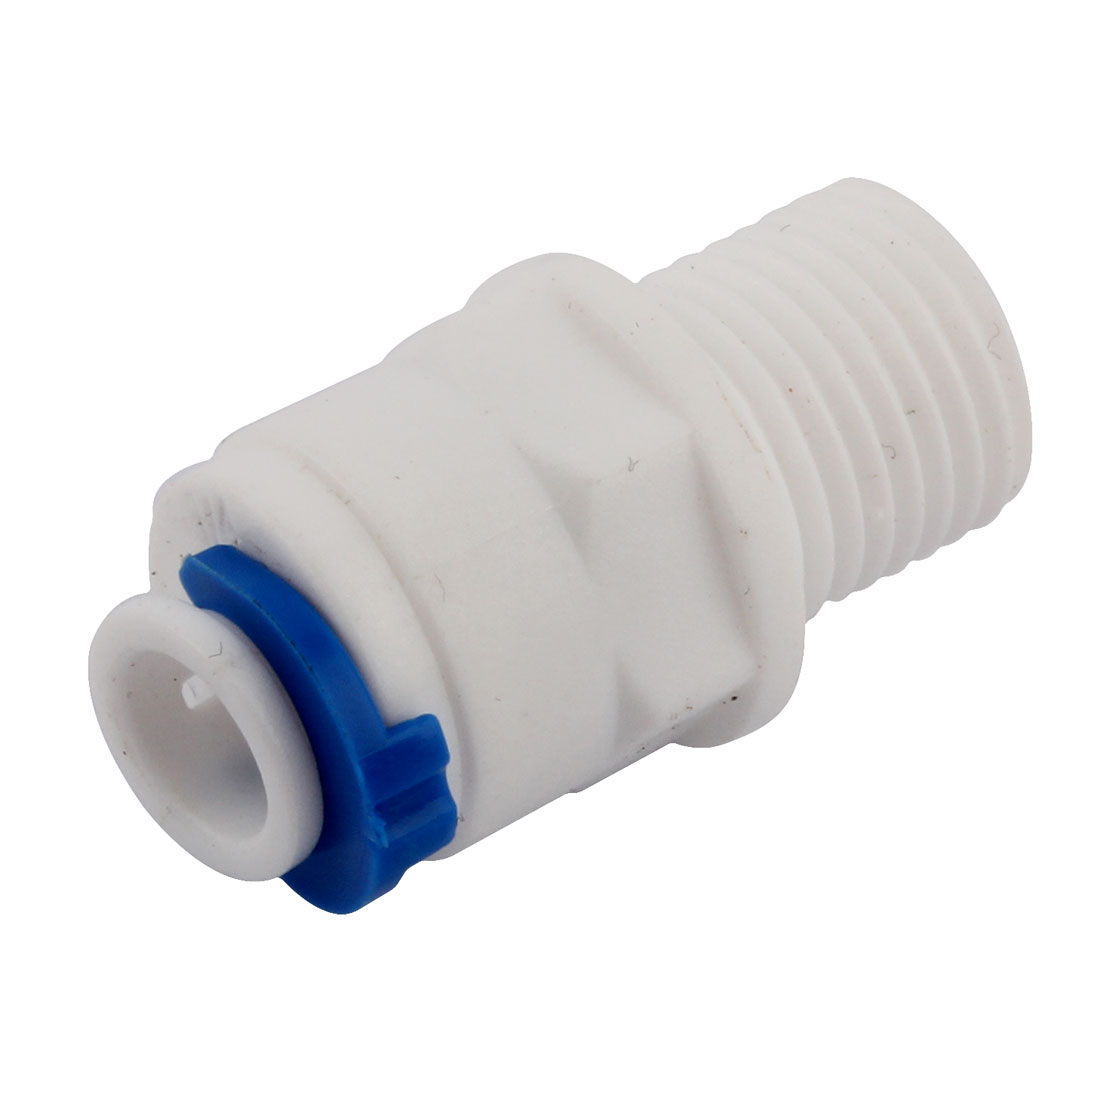 1/4 BSP Thread 6.5mm Inner Dia Plastic Water Dispenser Quick Adapter Connector